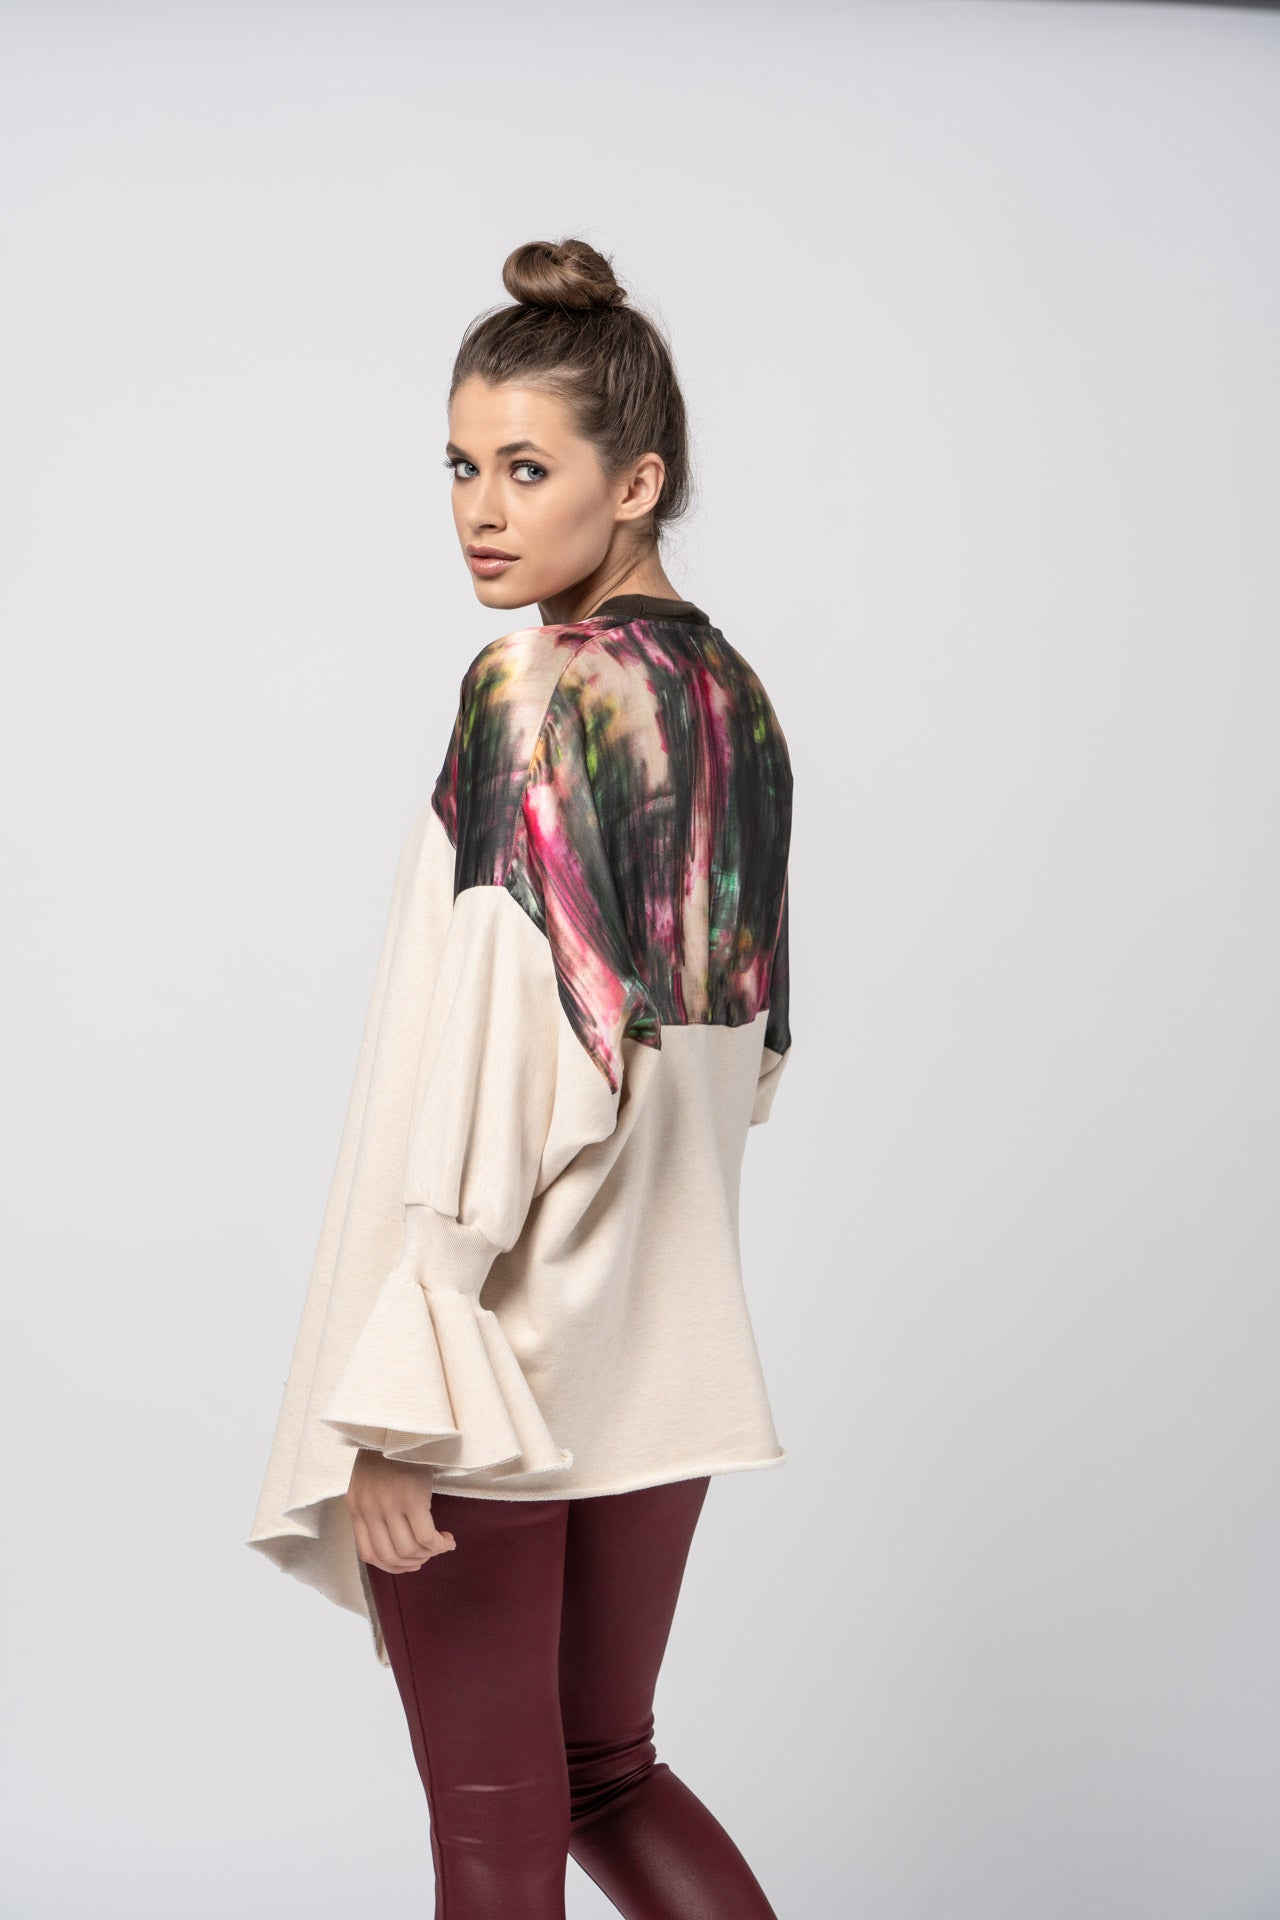 Allegory Cardigan - Rose Graphite Print Cardigan - artTECA